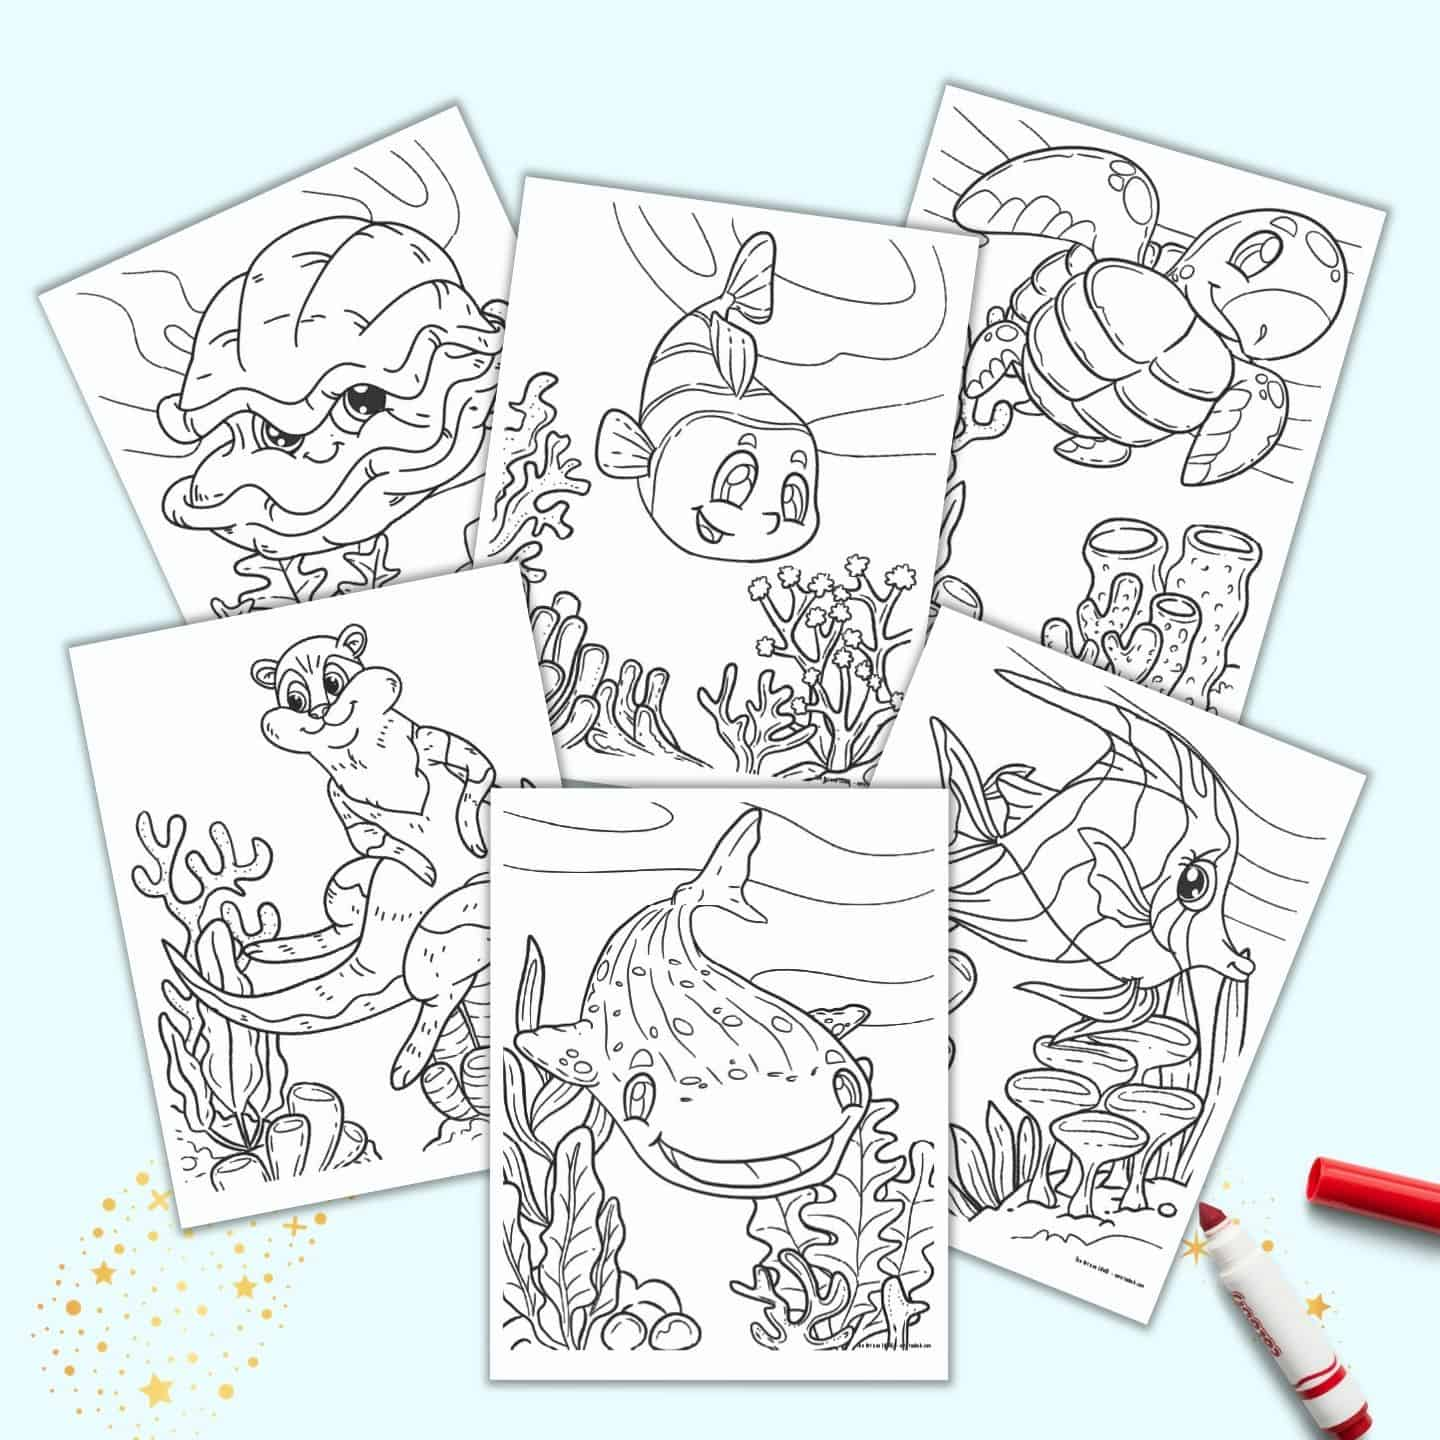 21 Free Printable Cute Sea Creature Coloring Pages For Kids The Artisan Life